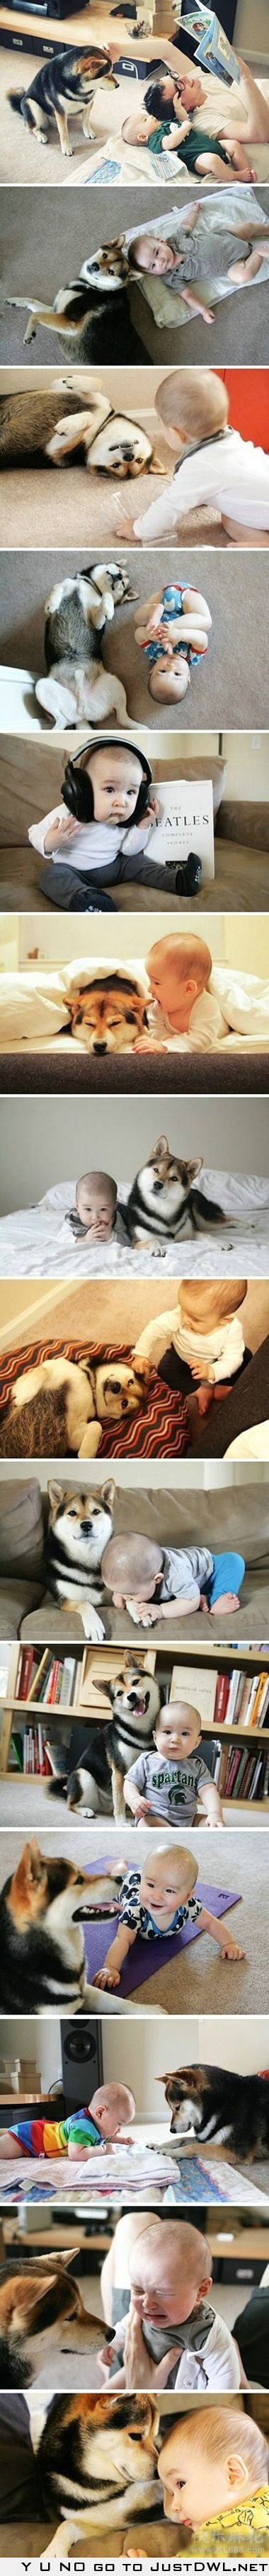 Ahhhh reminds me of our pups I miss them so much :(( They did that too when our son was a baby :)